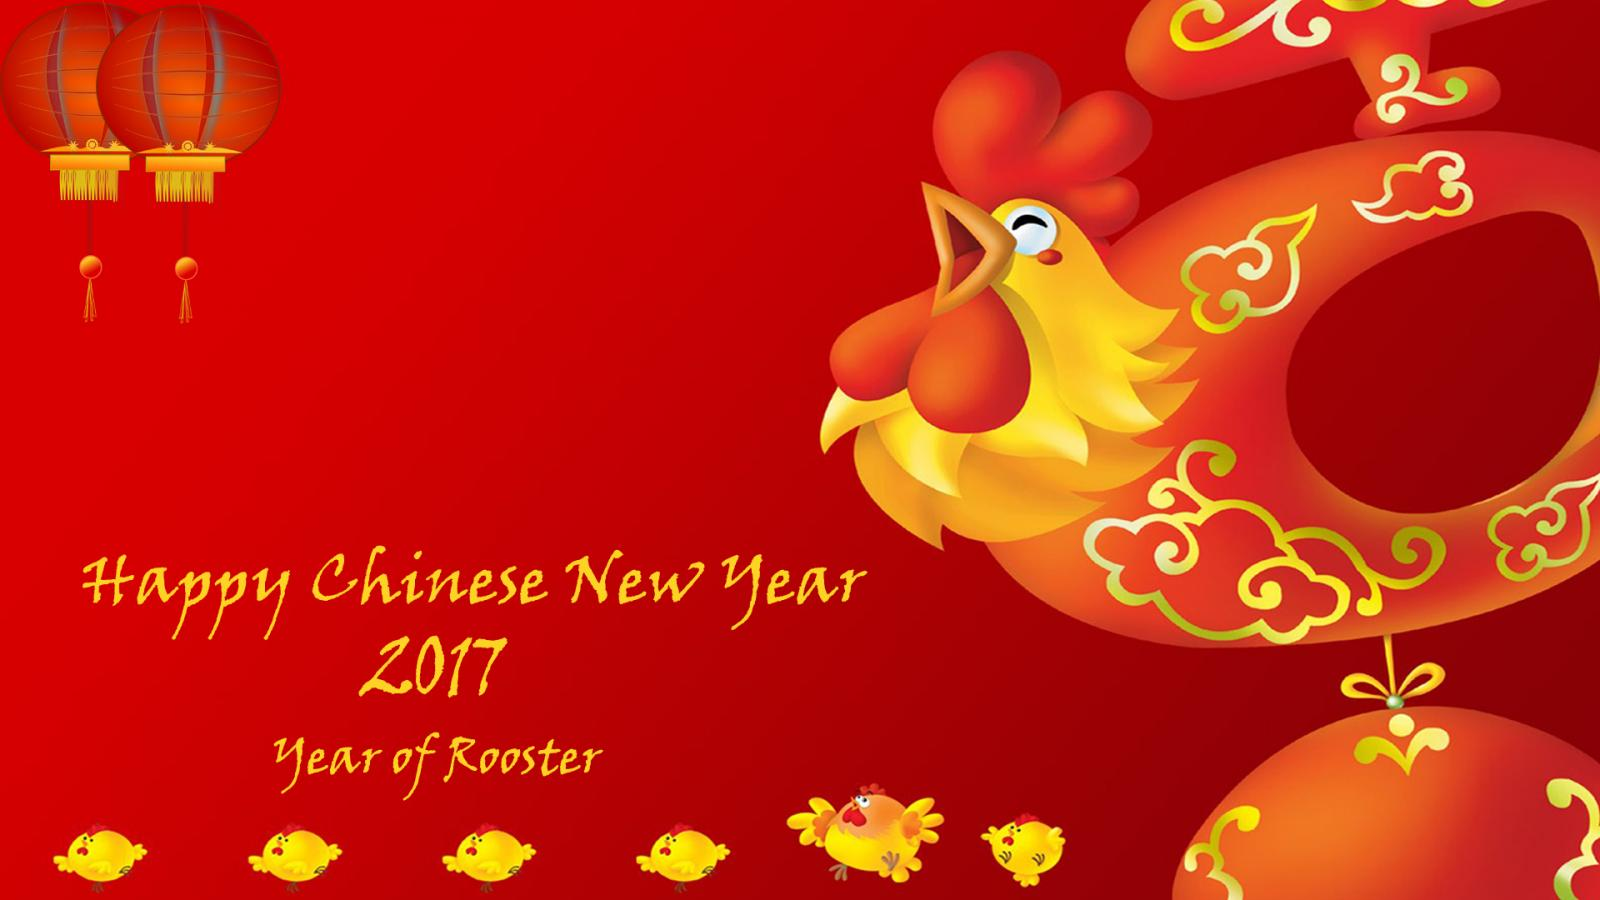 Rooster Chinese New Year Wallpaper HD Wallpapers 1600x900